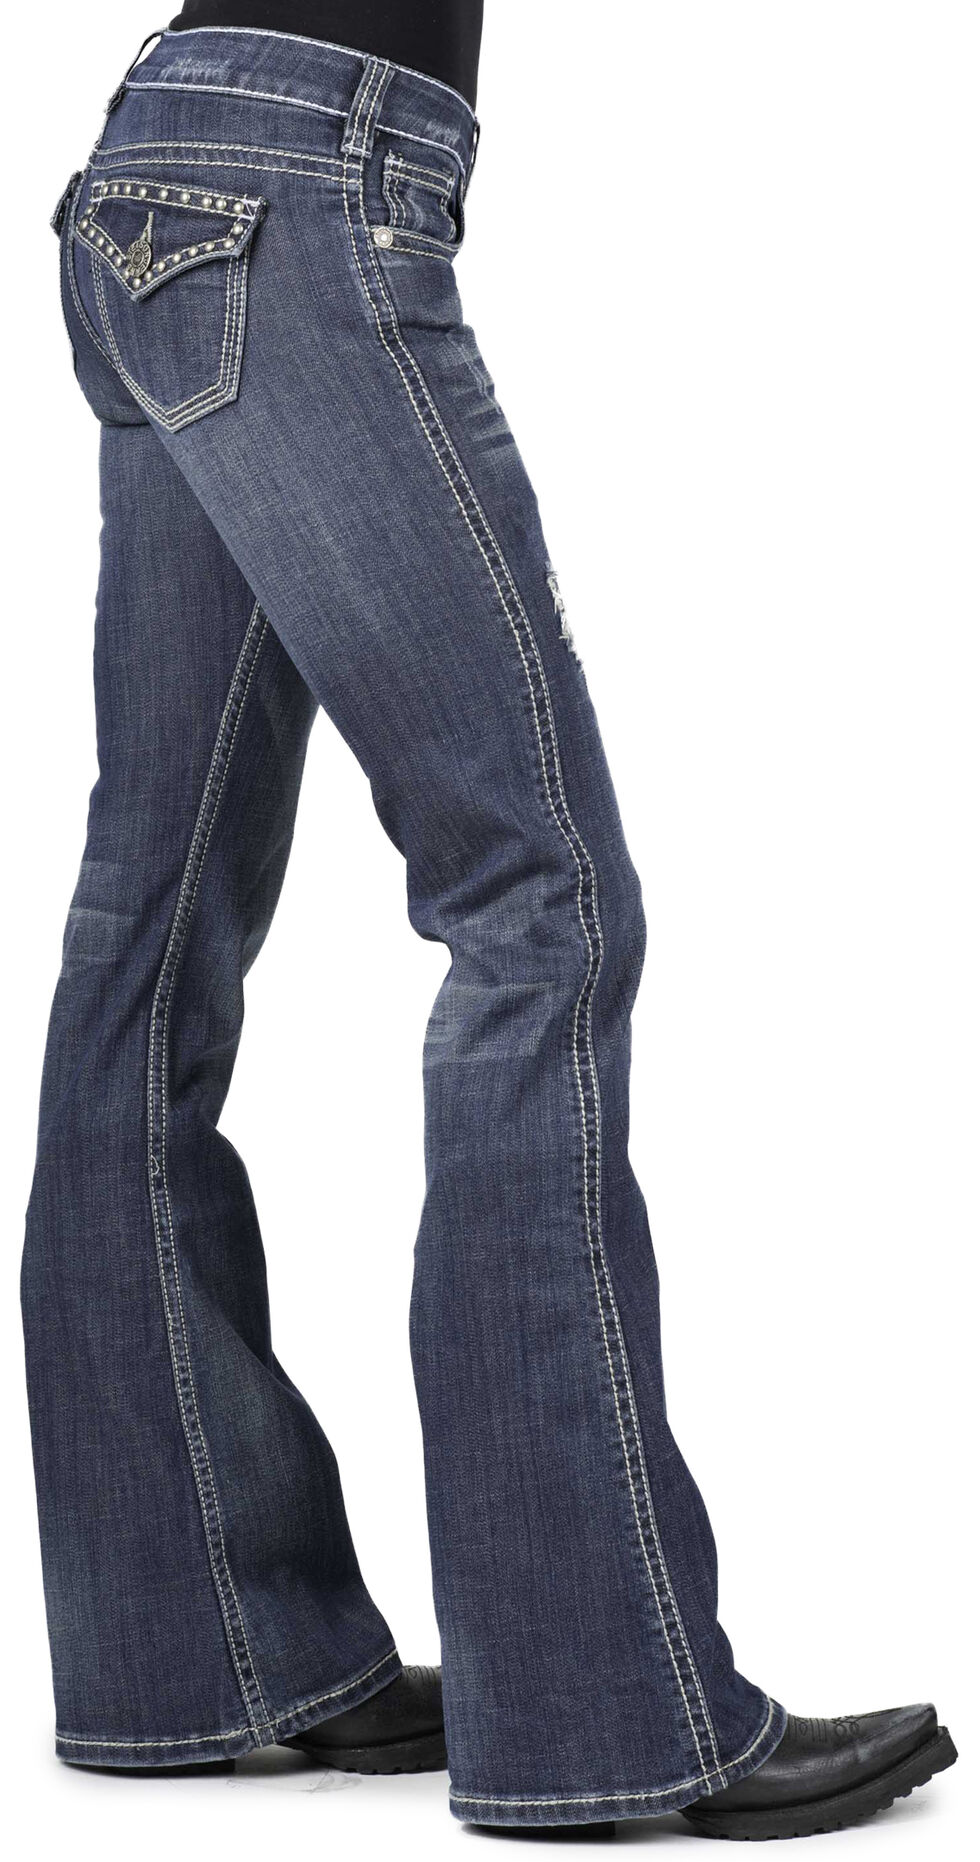 Stetson Women's 816 Classic Fit Studded Flap Pocket Jeans, Denim, hi-res